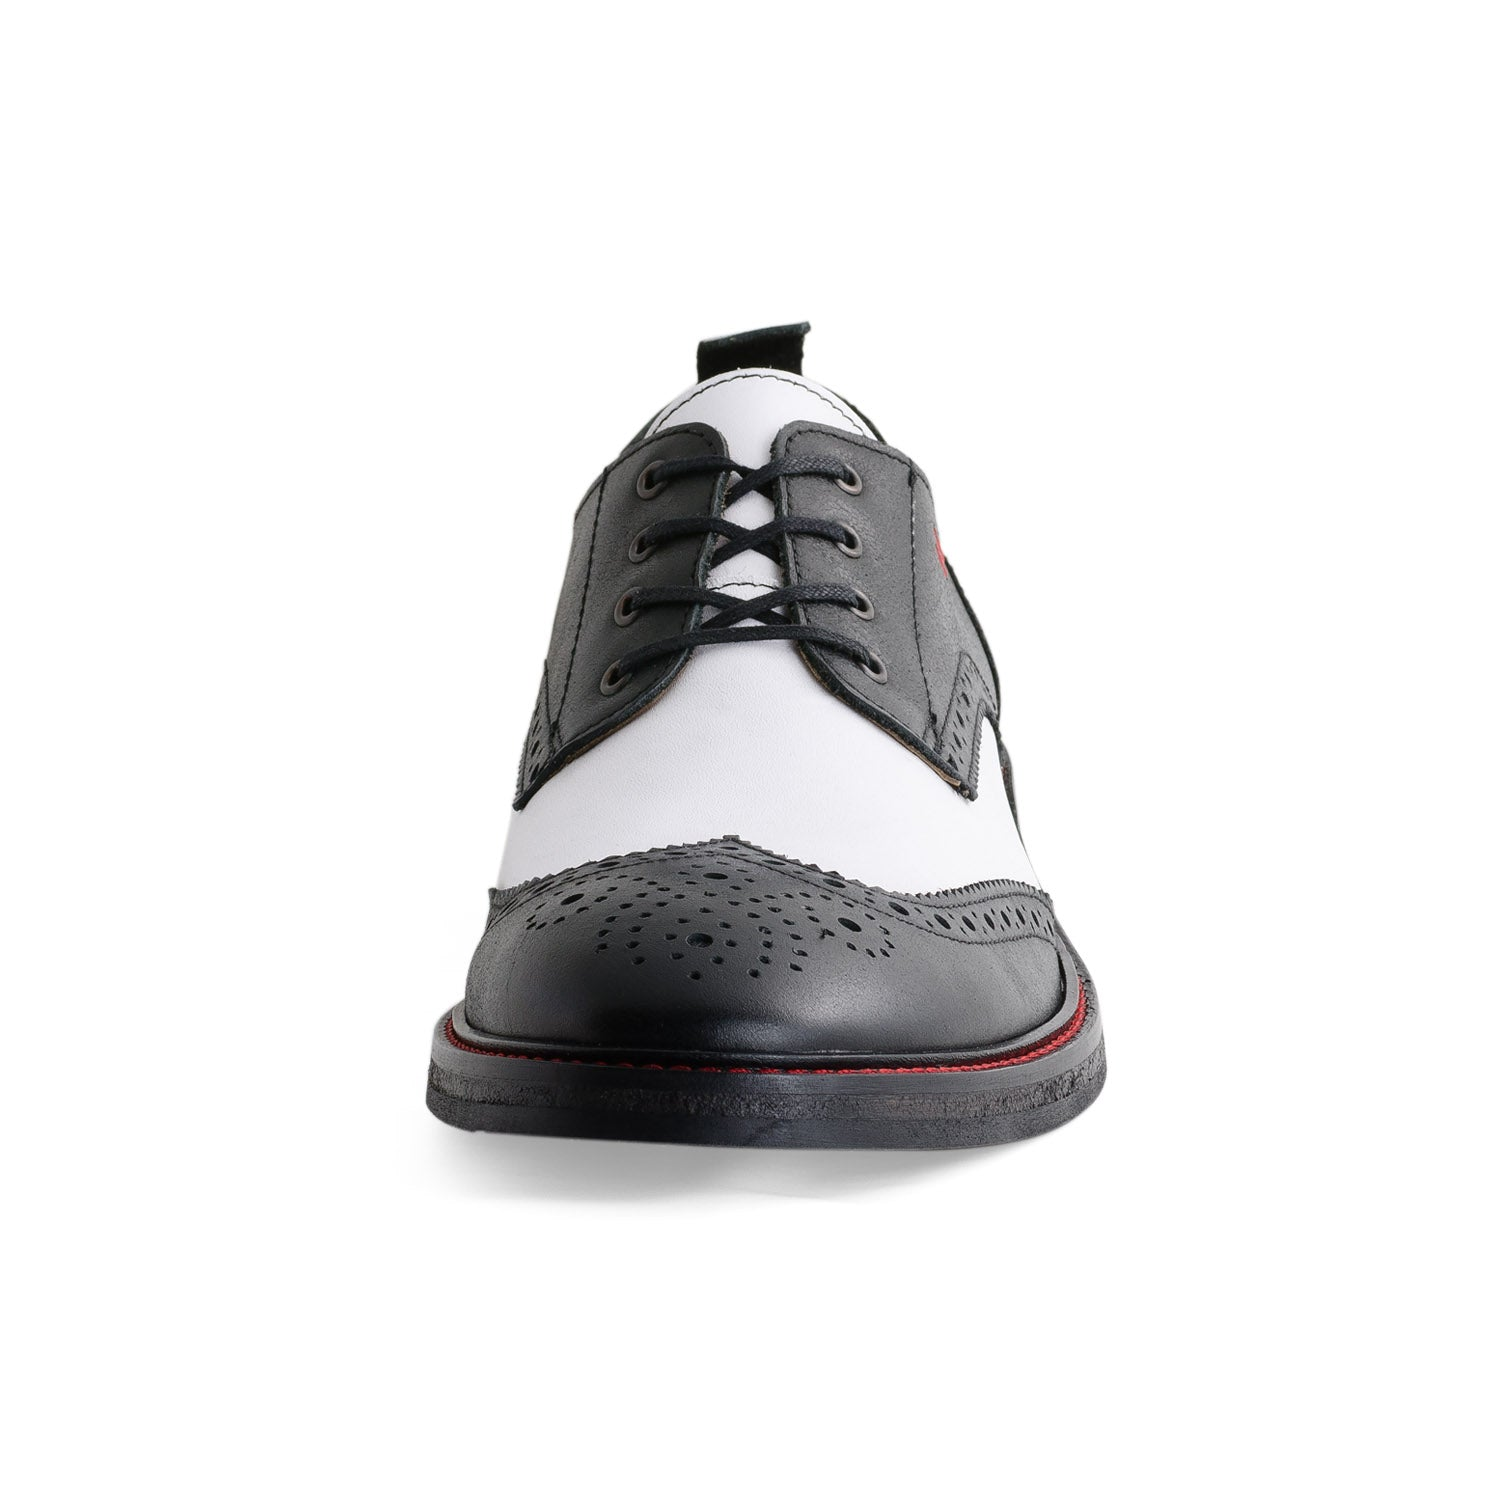 NiK Kacy Luxury, Handcrafted Black and White Wingtip Shoes Limited-Edition